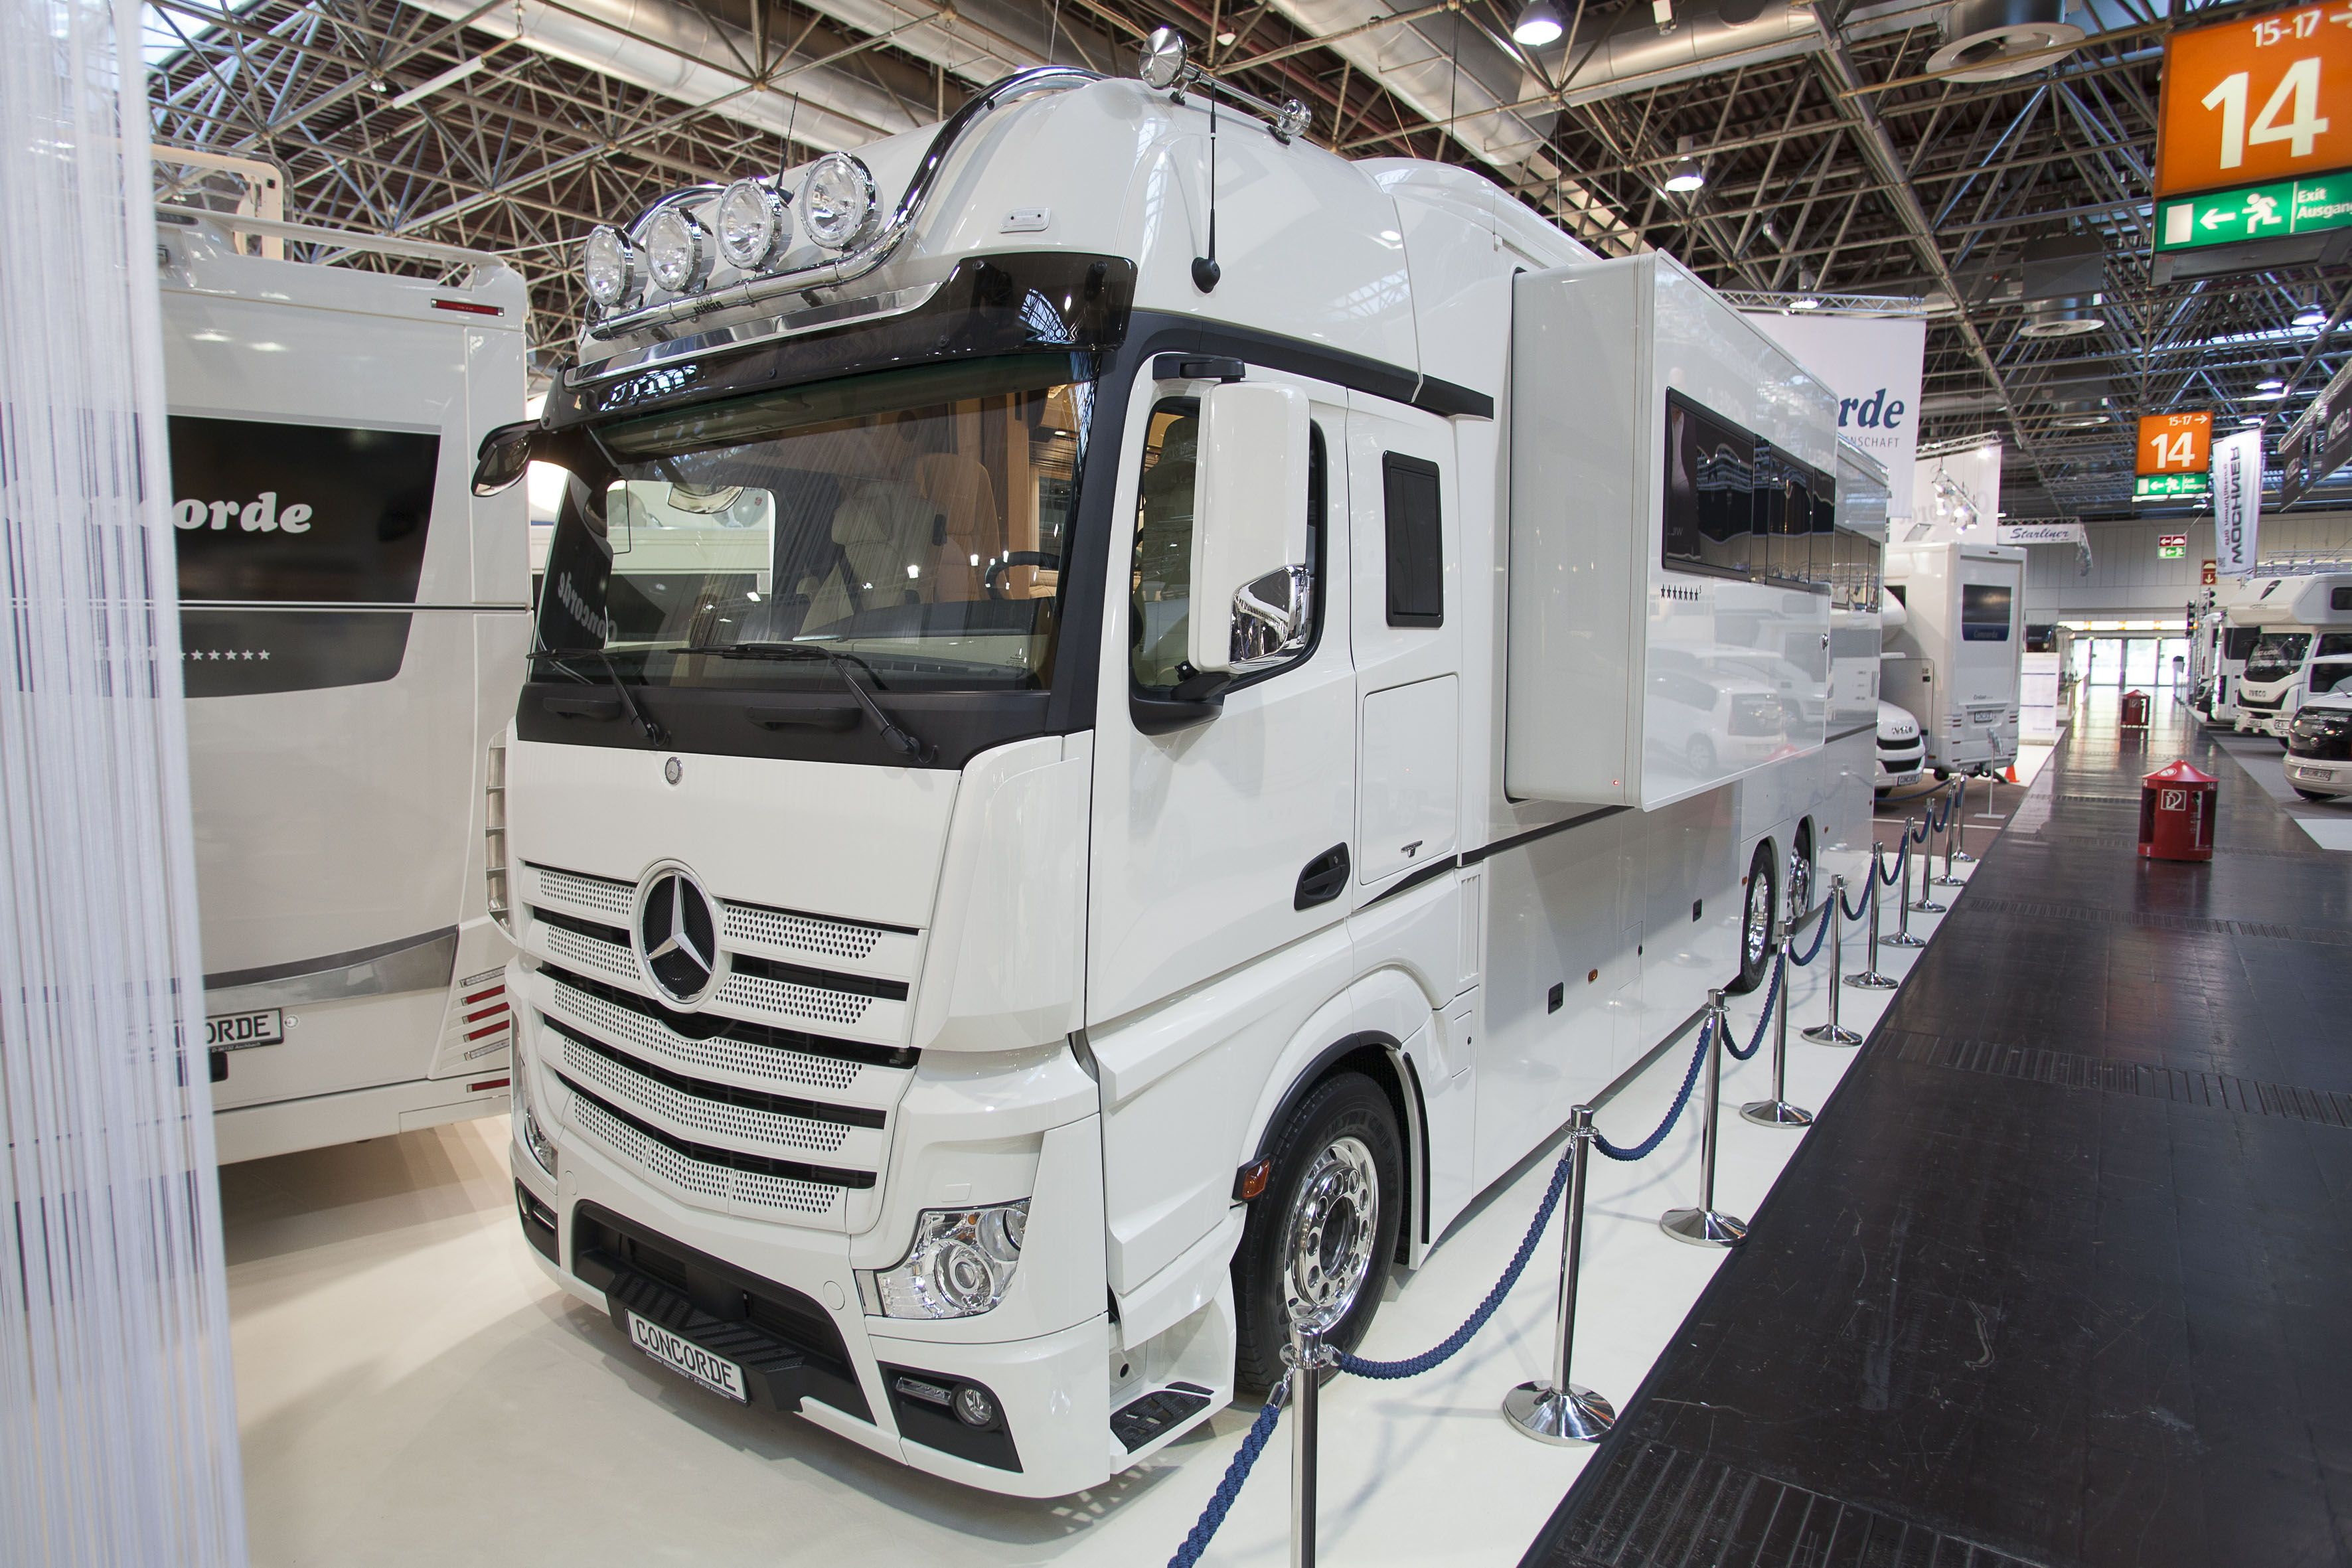 Mercedes-Benz-3 Trucks Turned Into Mobile Homes on locomotives turned into homes, rv's turned into homes, boats turned into homes, old schools turned into homes, factories turned into homes, hotels turned into homes, grain bins turned into homes, containers turned into homes, bridges turned into homes, bus turned into homes,